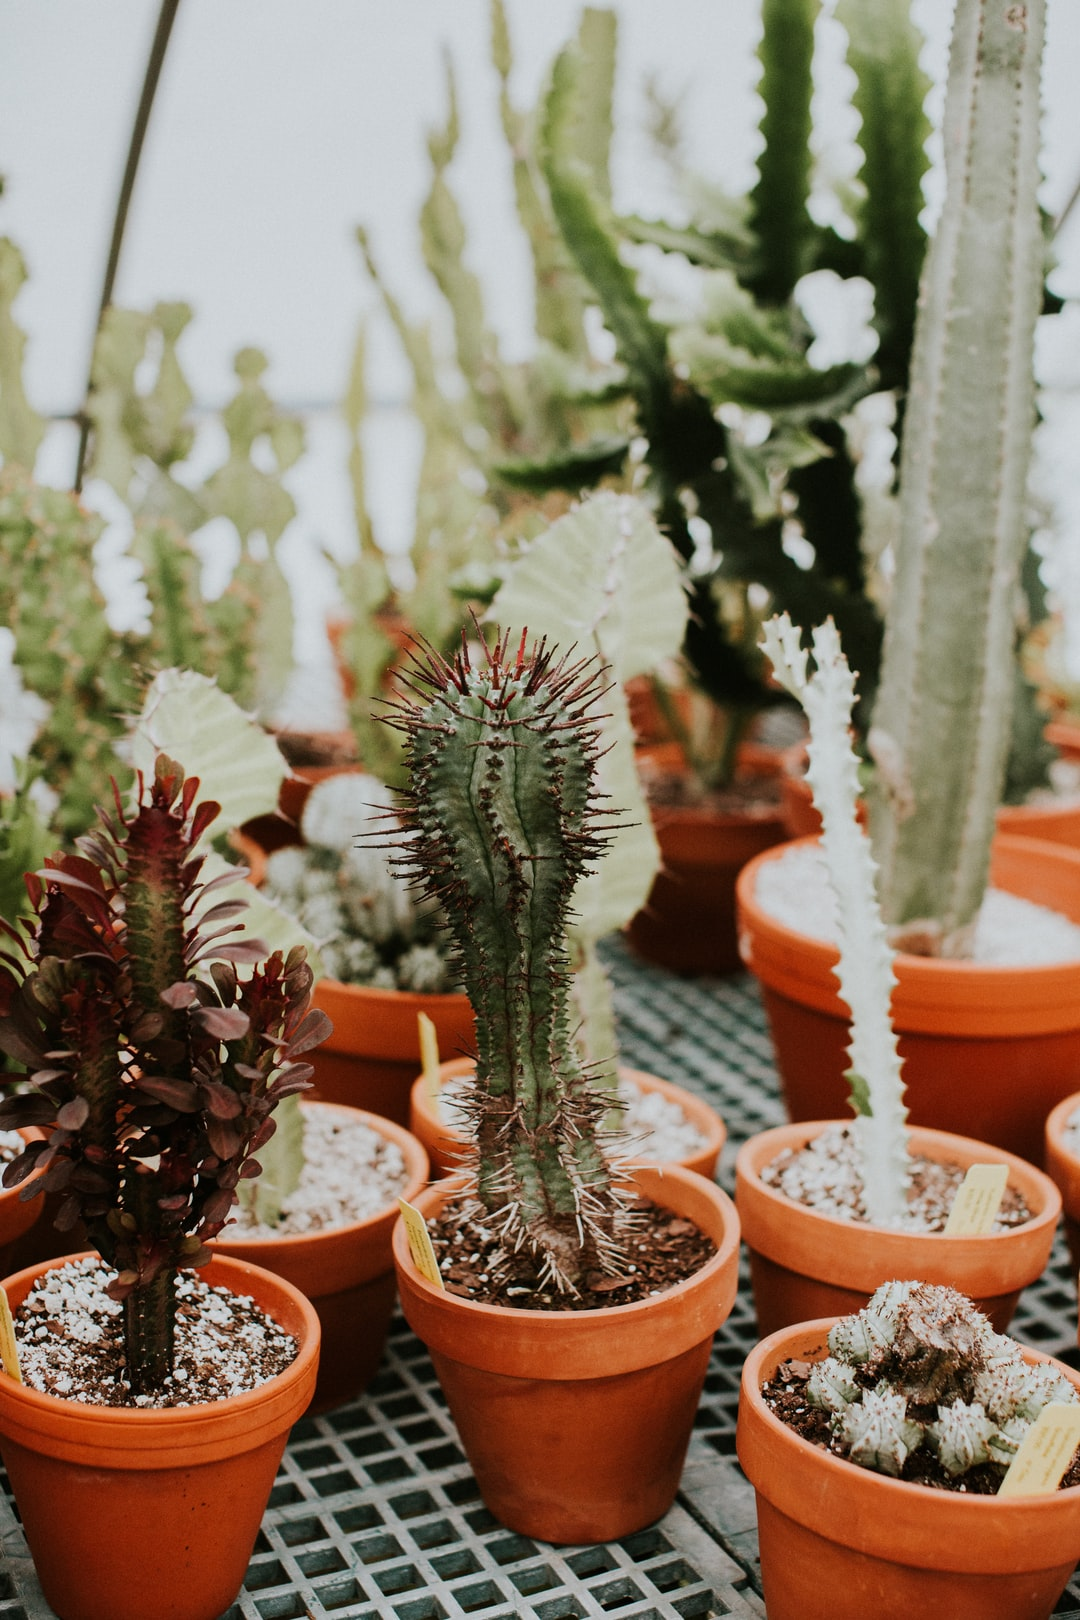 lots of greenery and cactus plants in a greenhouse